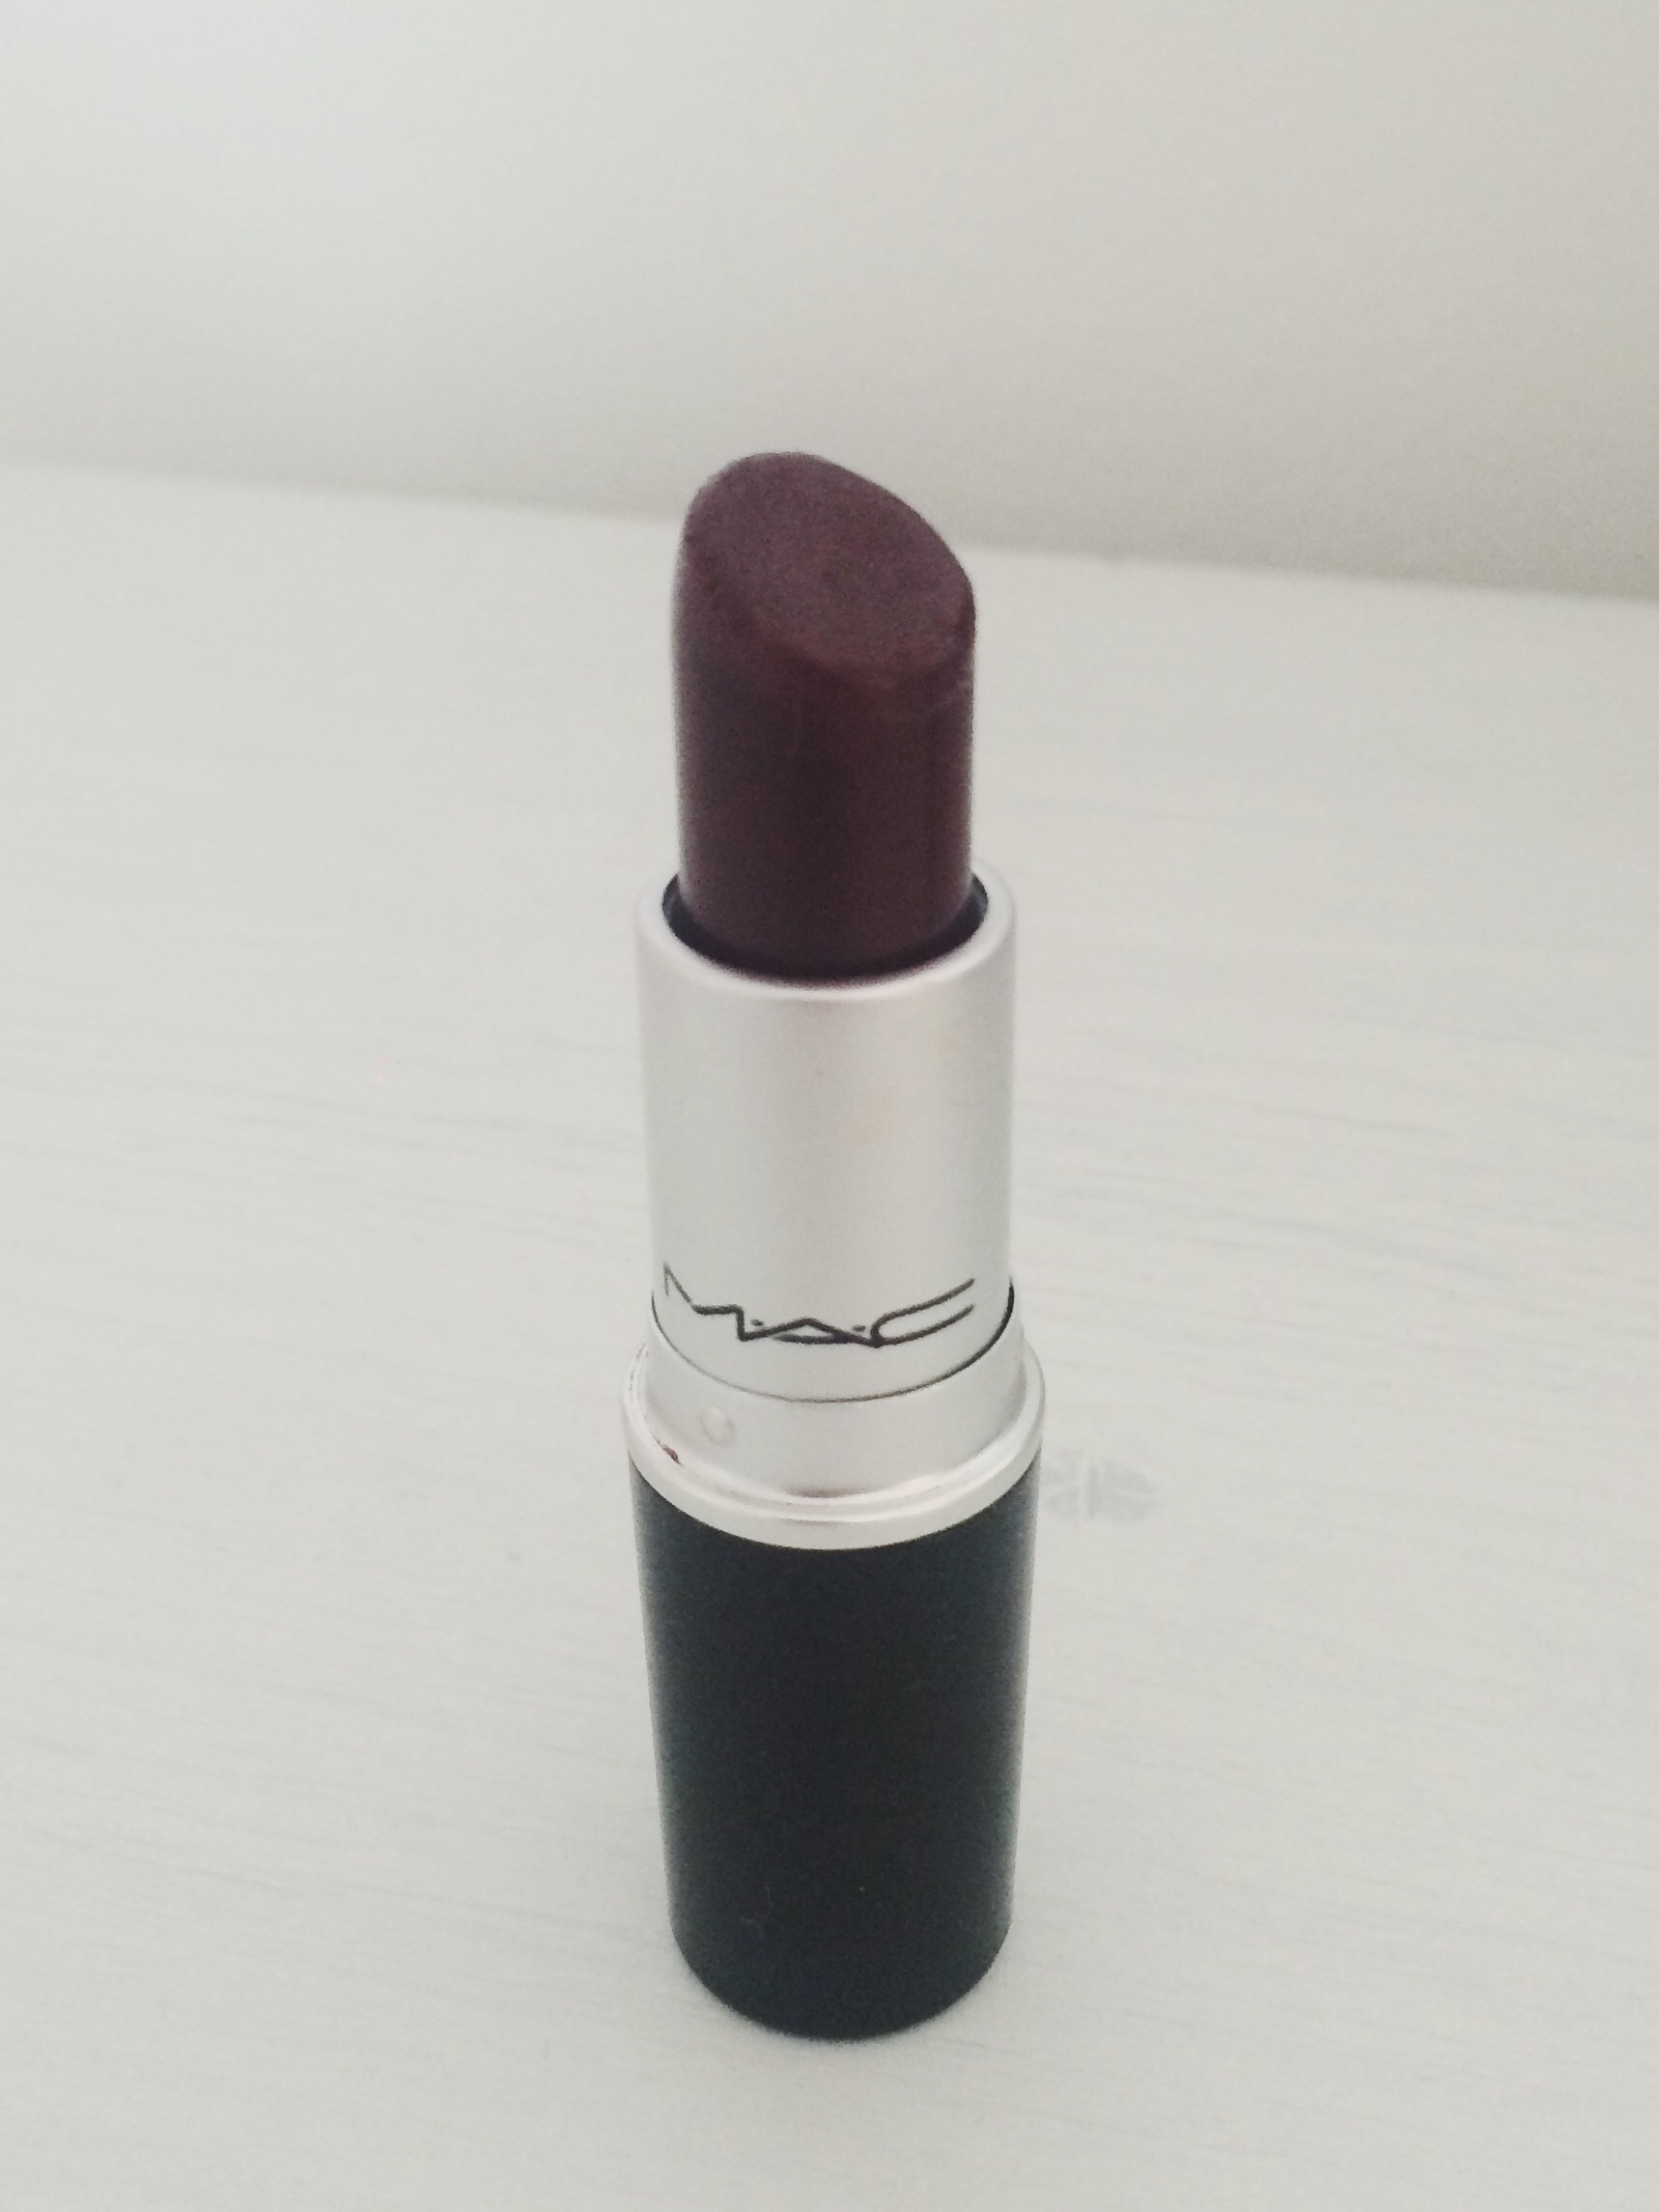 This lipstick looks a lot darker in the packaging than on the lips, in reality it's a deep berry tone that gives a you a more vampy look. Great for nights out, but because it's a Cremesheen formula, I find that it wears off a bit quicker than the other ones and it's a little shinier.